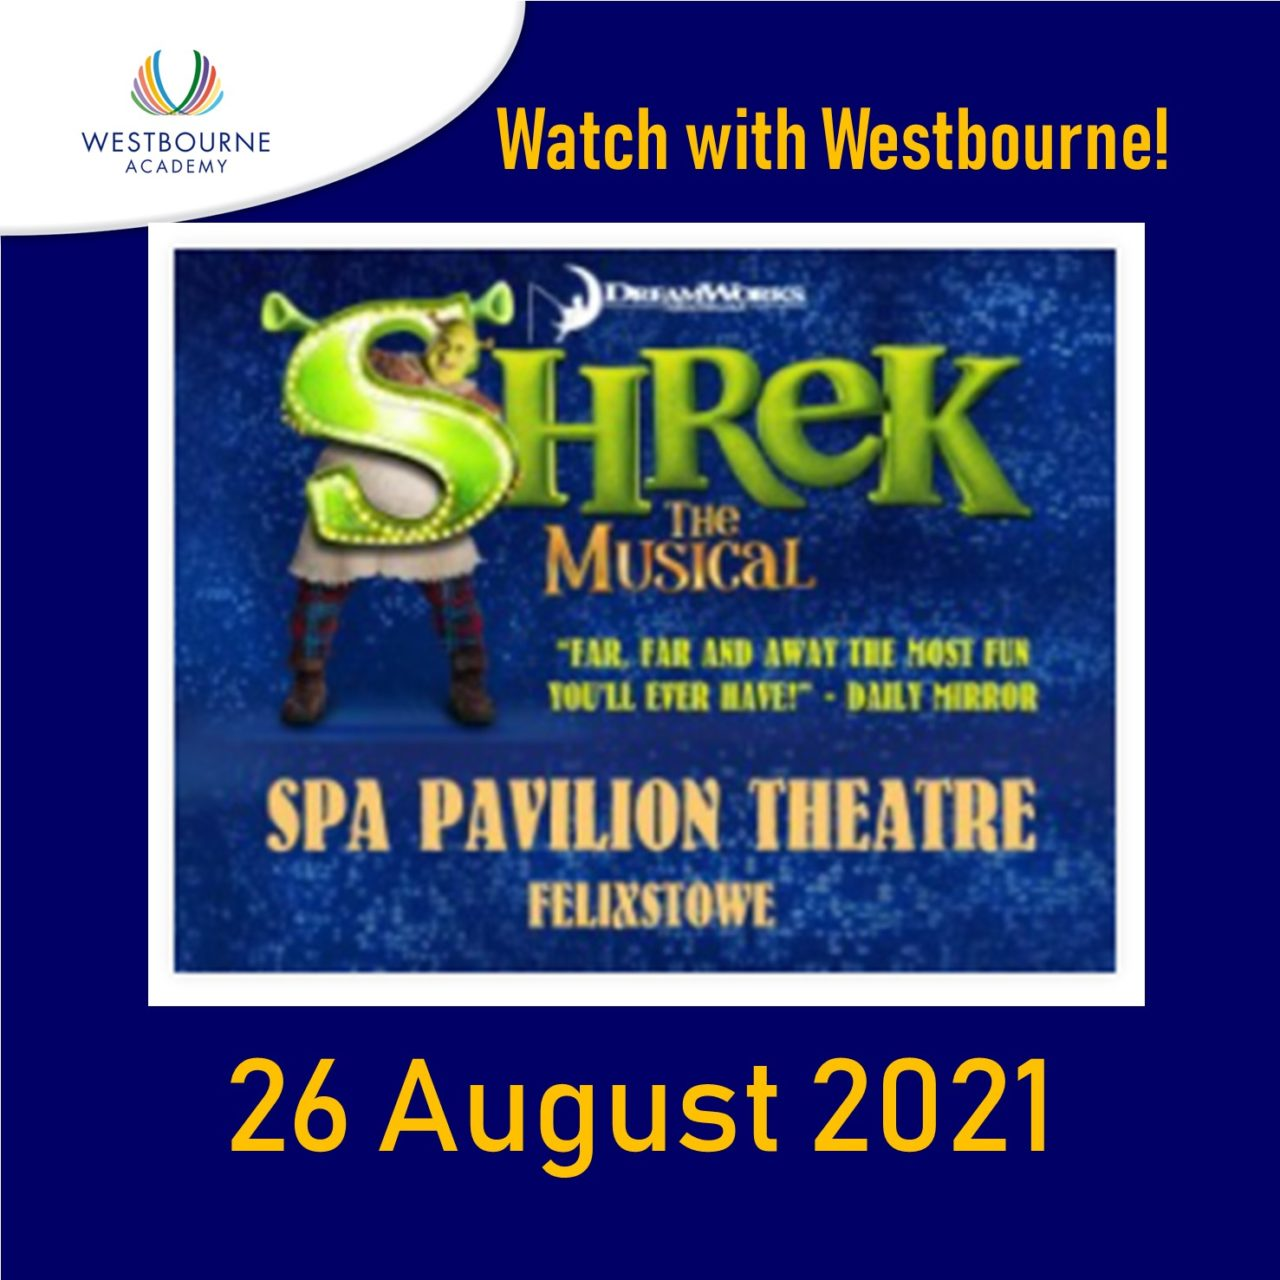 Watch with Westbourne - Shrek the Musical 26 August 2021